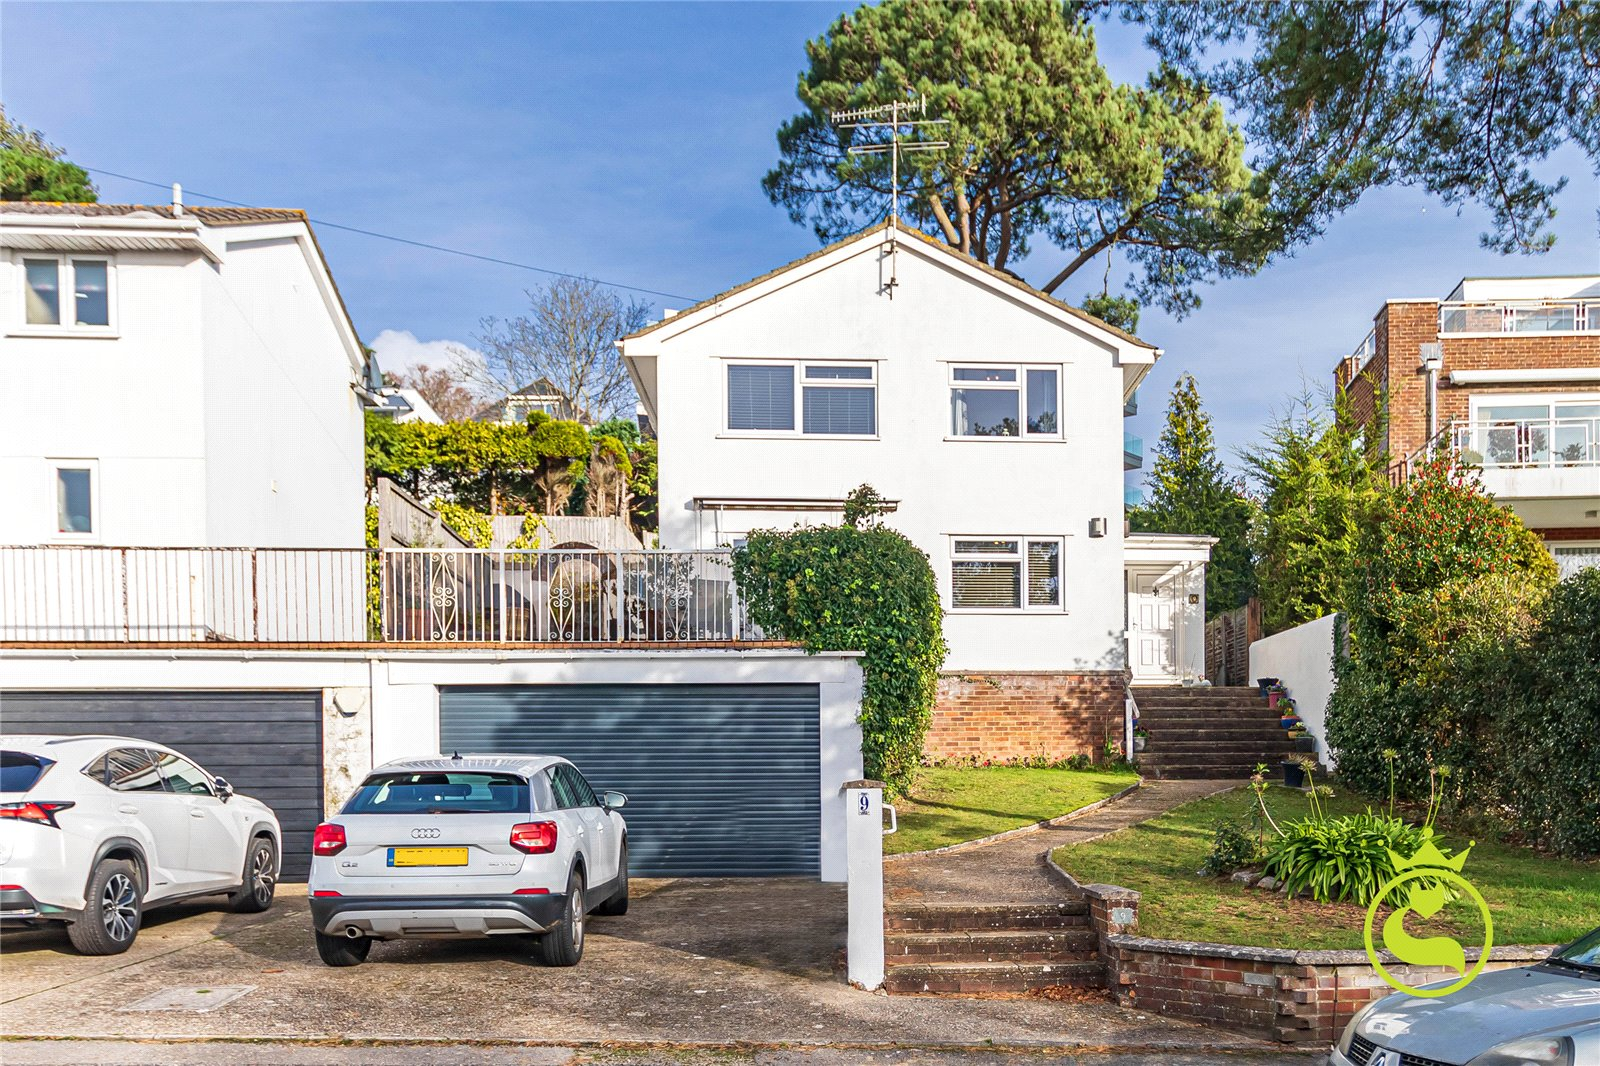 3 bed house for sale in Powell Road, Lower Parkstone - Property Image 1